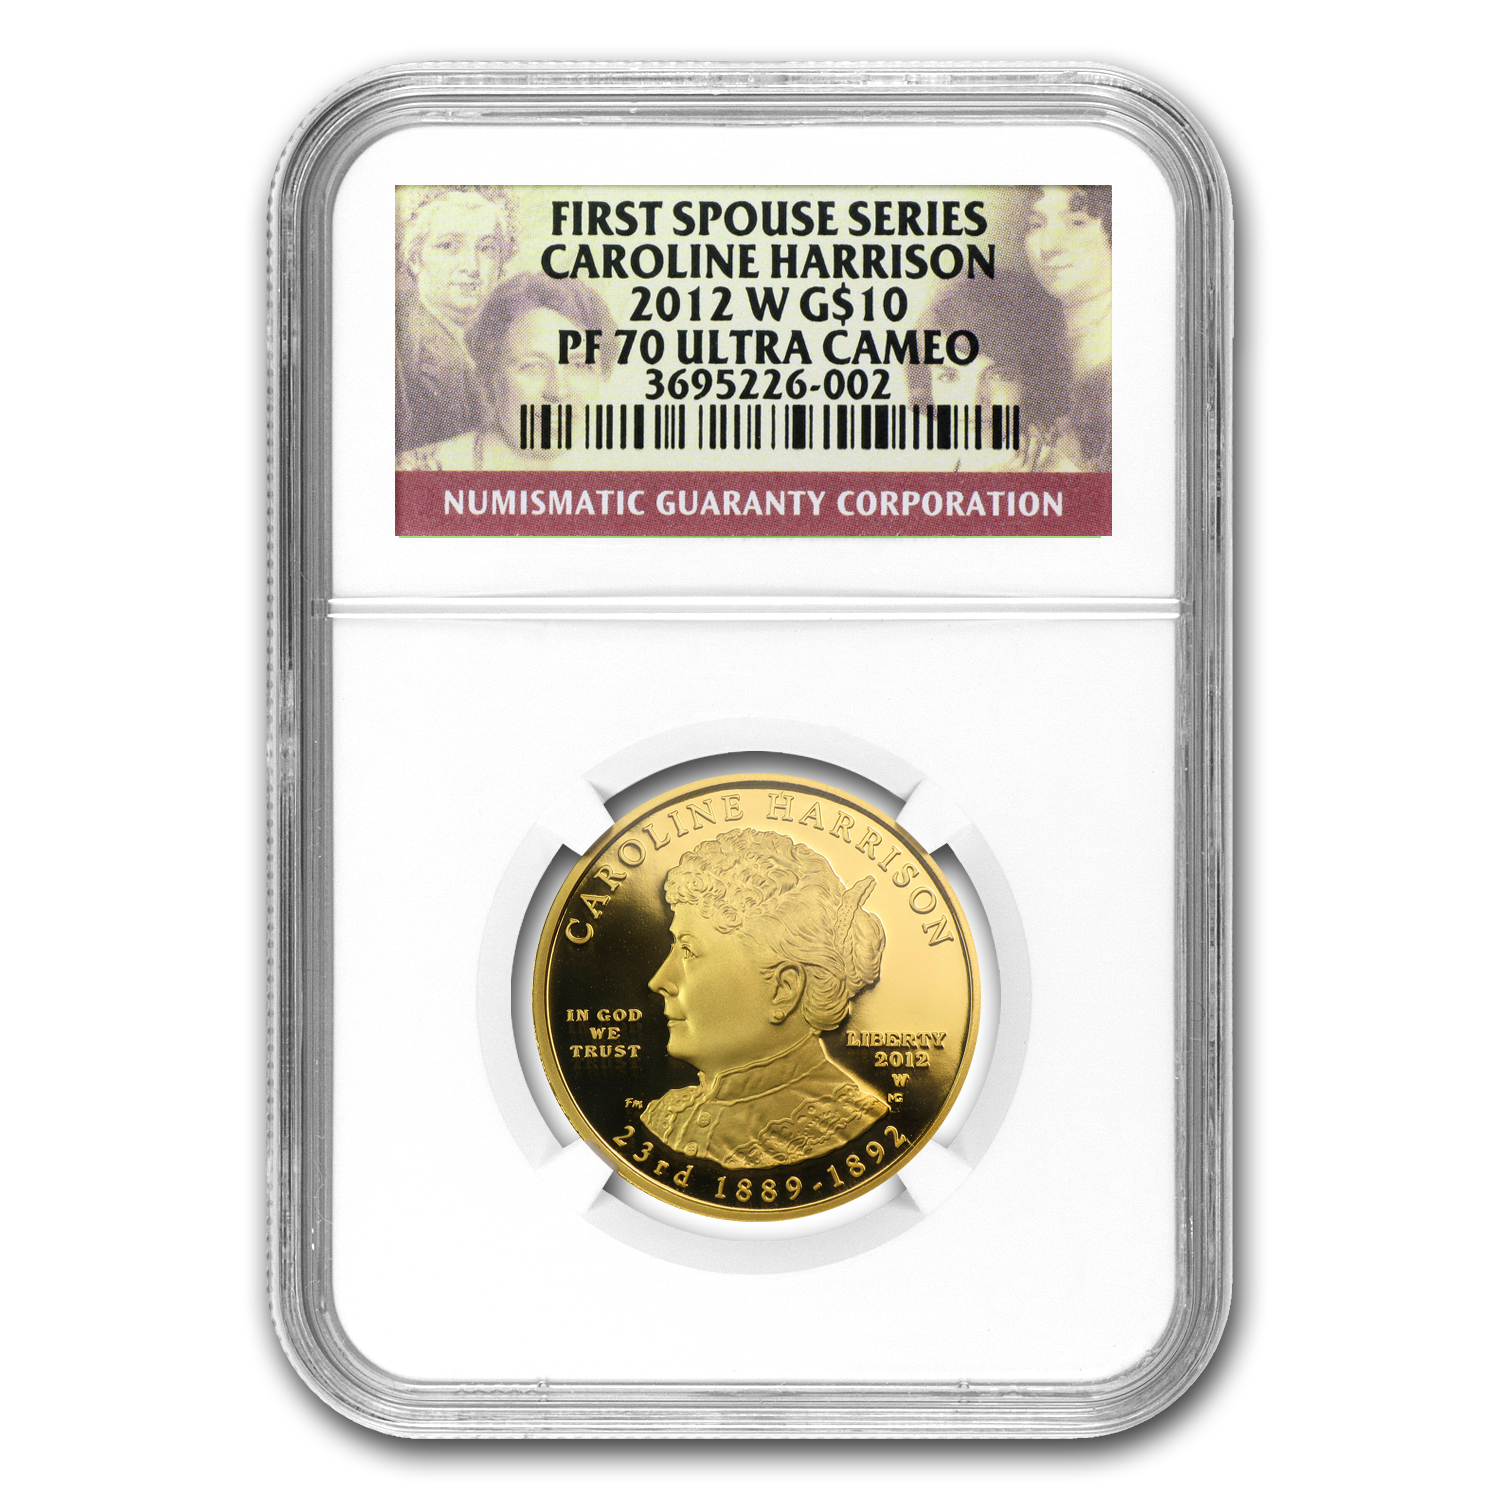 2012-W 1/2 oz Proof Gold Caroline Harrison PF-70 NGC